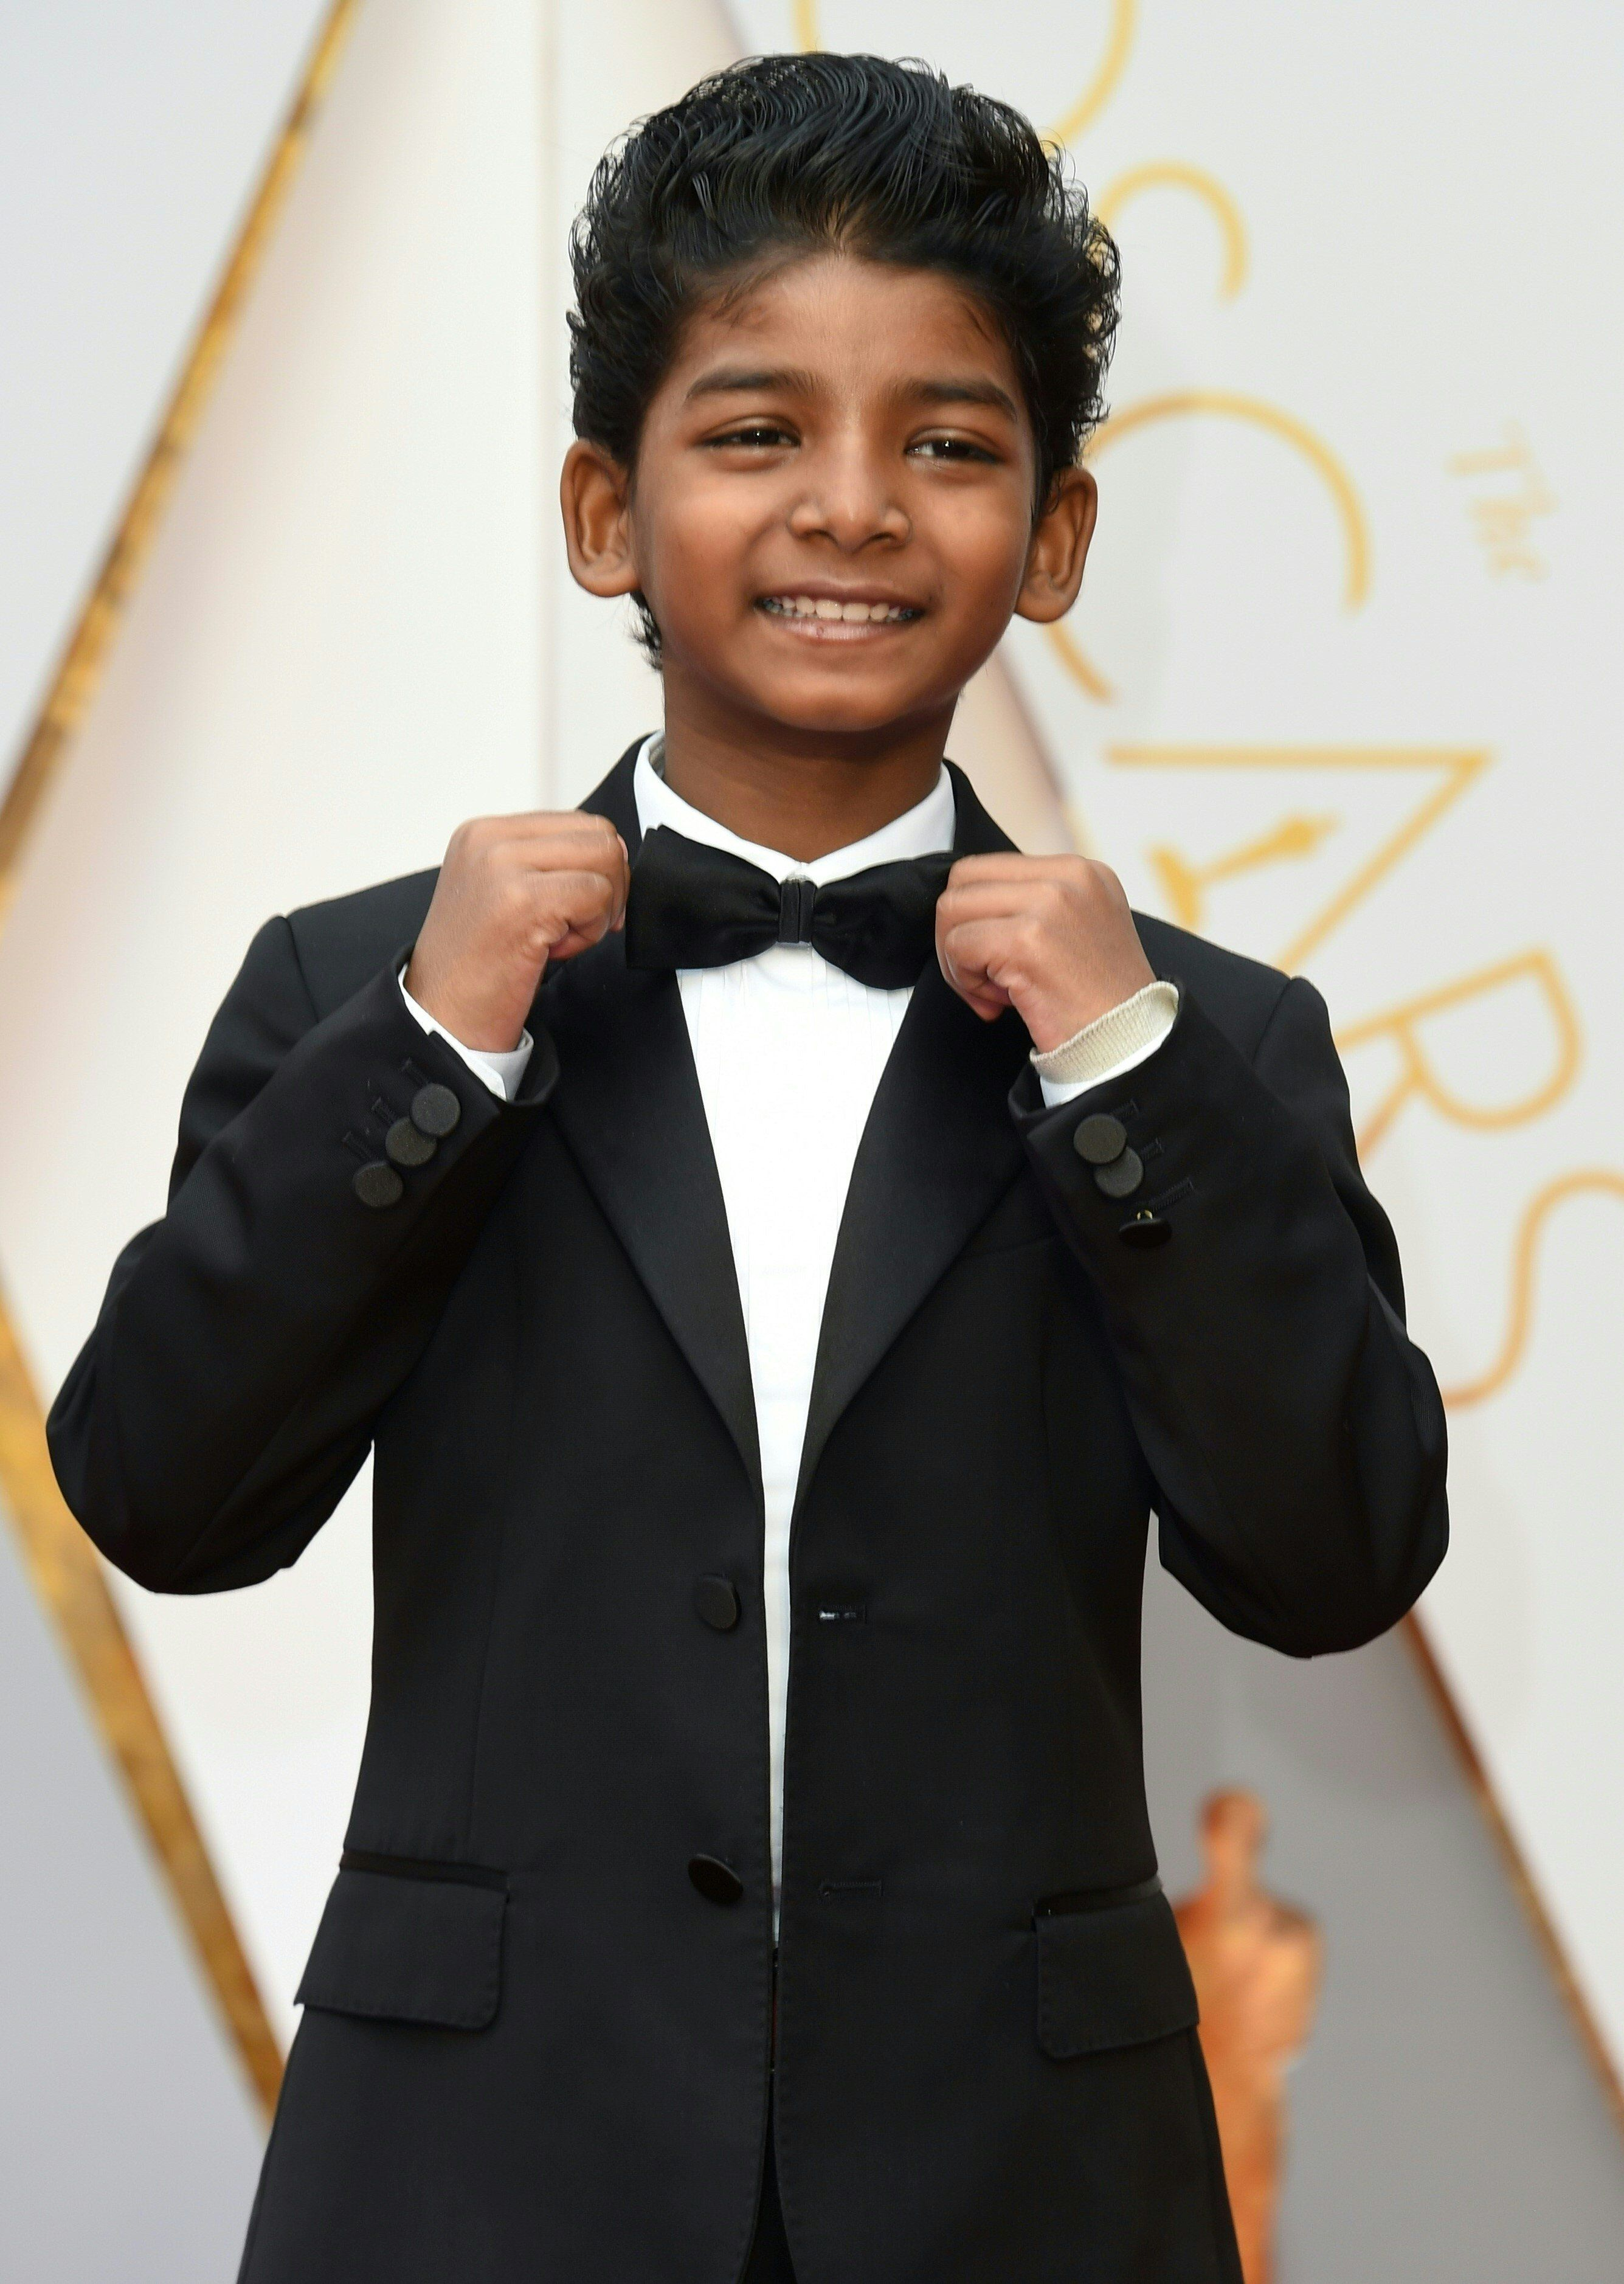 Sunny Pawar arrives on the red carpet for the 89th Oscars on February 26, 2017 in Hollywood, California.  / AFP / VALERIE MACON        (Photo credit should read VALERIE MACON/AFP/Getty Images)